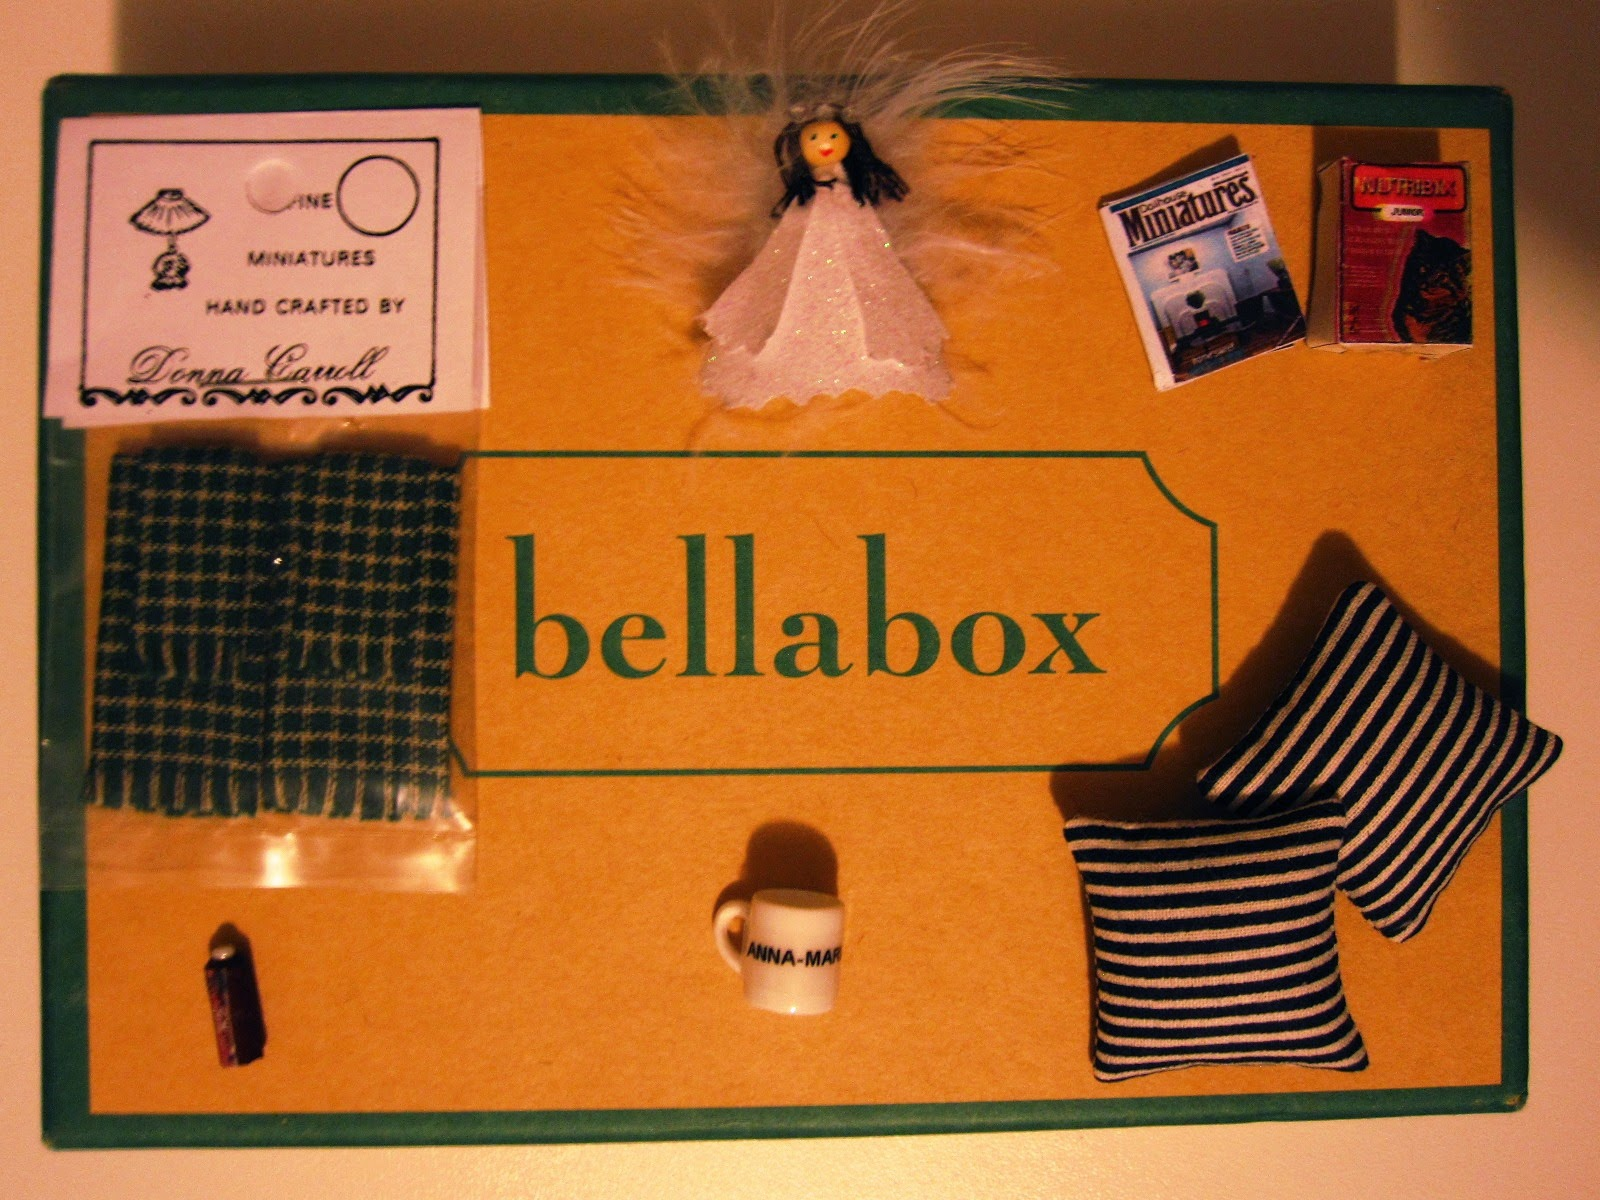 Selection of dolls house miniatures displayed on the top of a small cardboard box labelled 'bellabox'